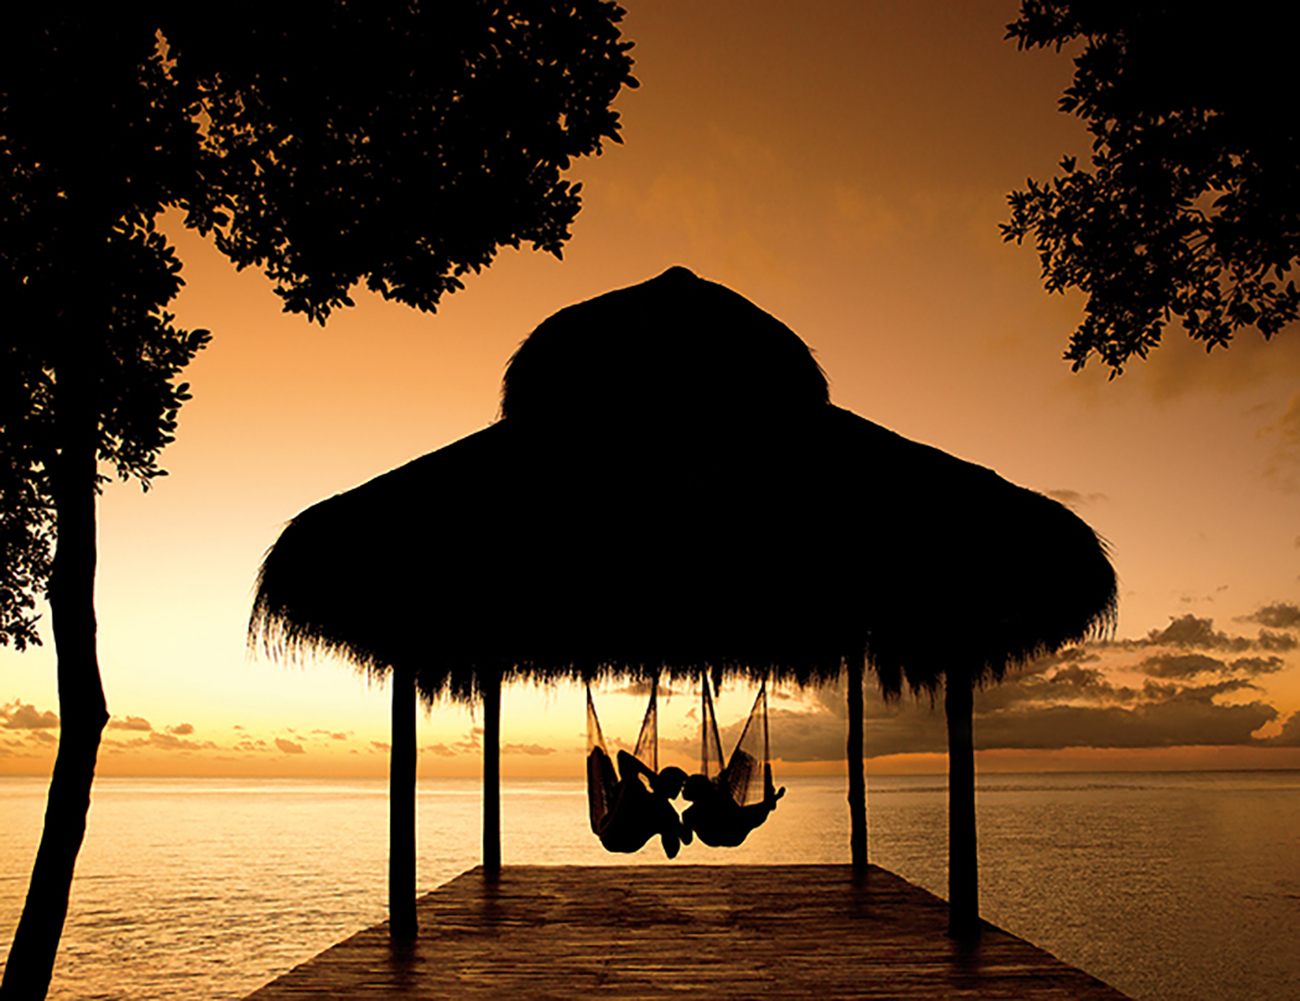 Honeymoon Vacation Hammock Sunset Secrets Resort